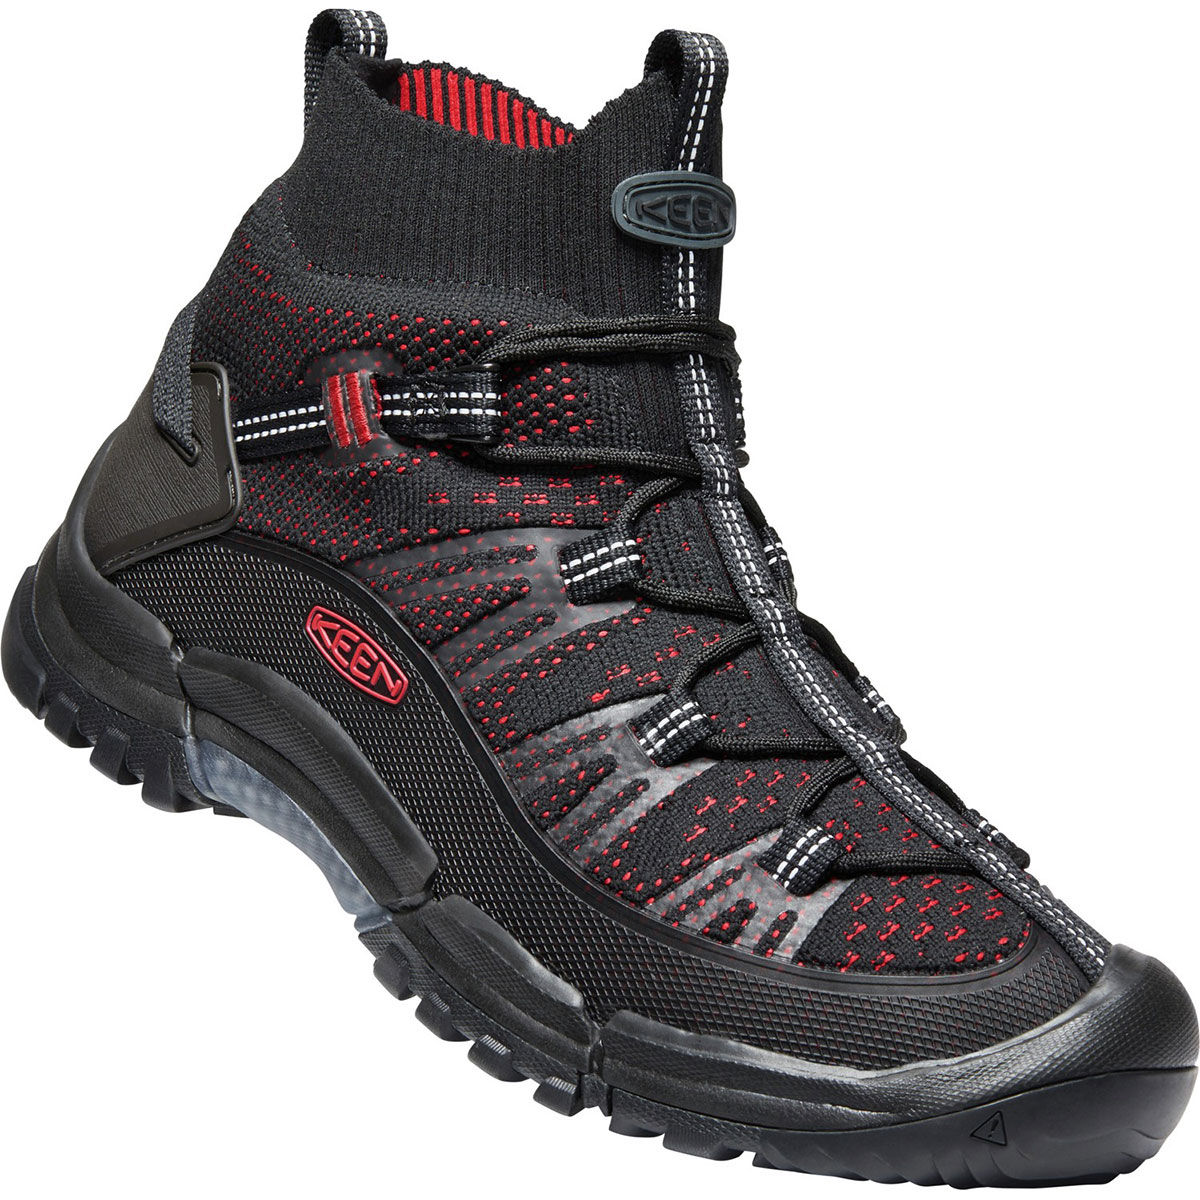 Keen Men's Axis Evo Mid Knit Hiking Boots - Black, 13